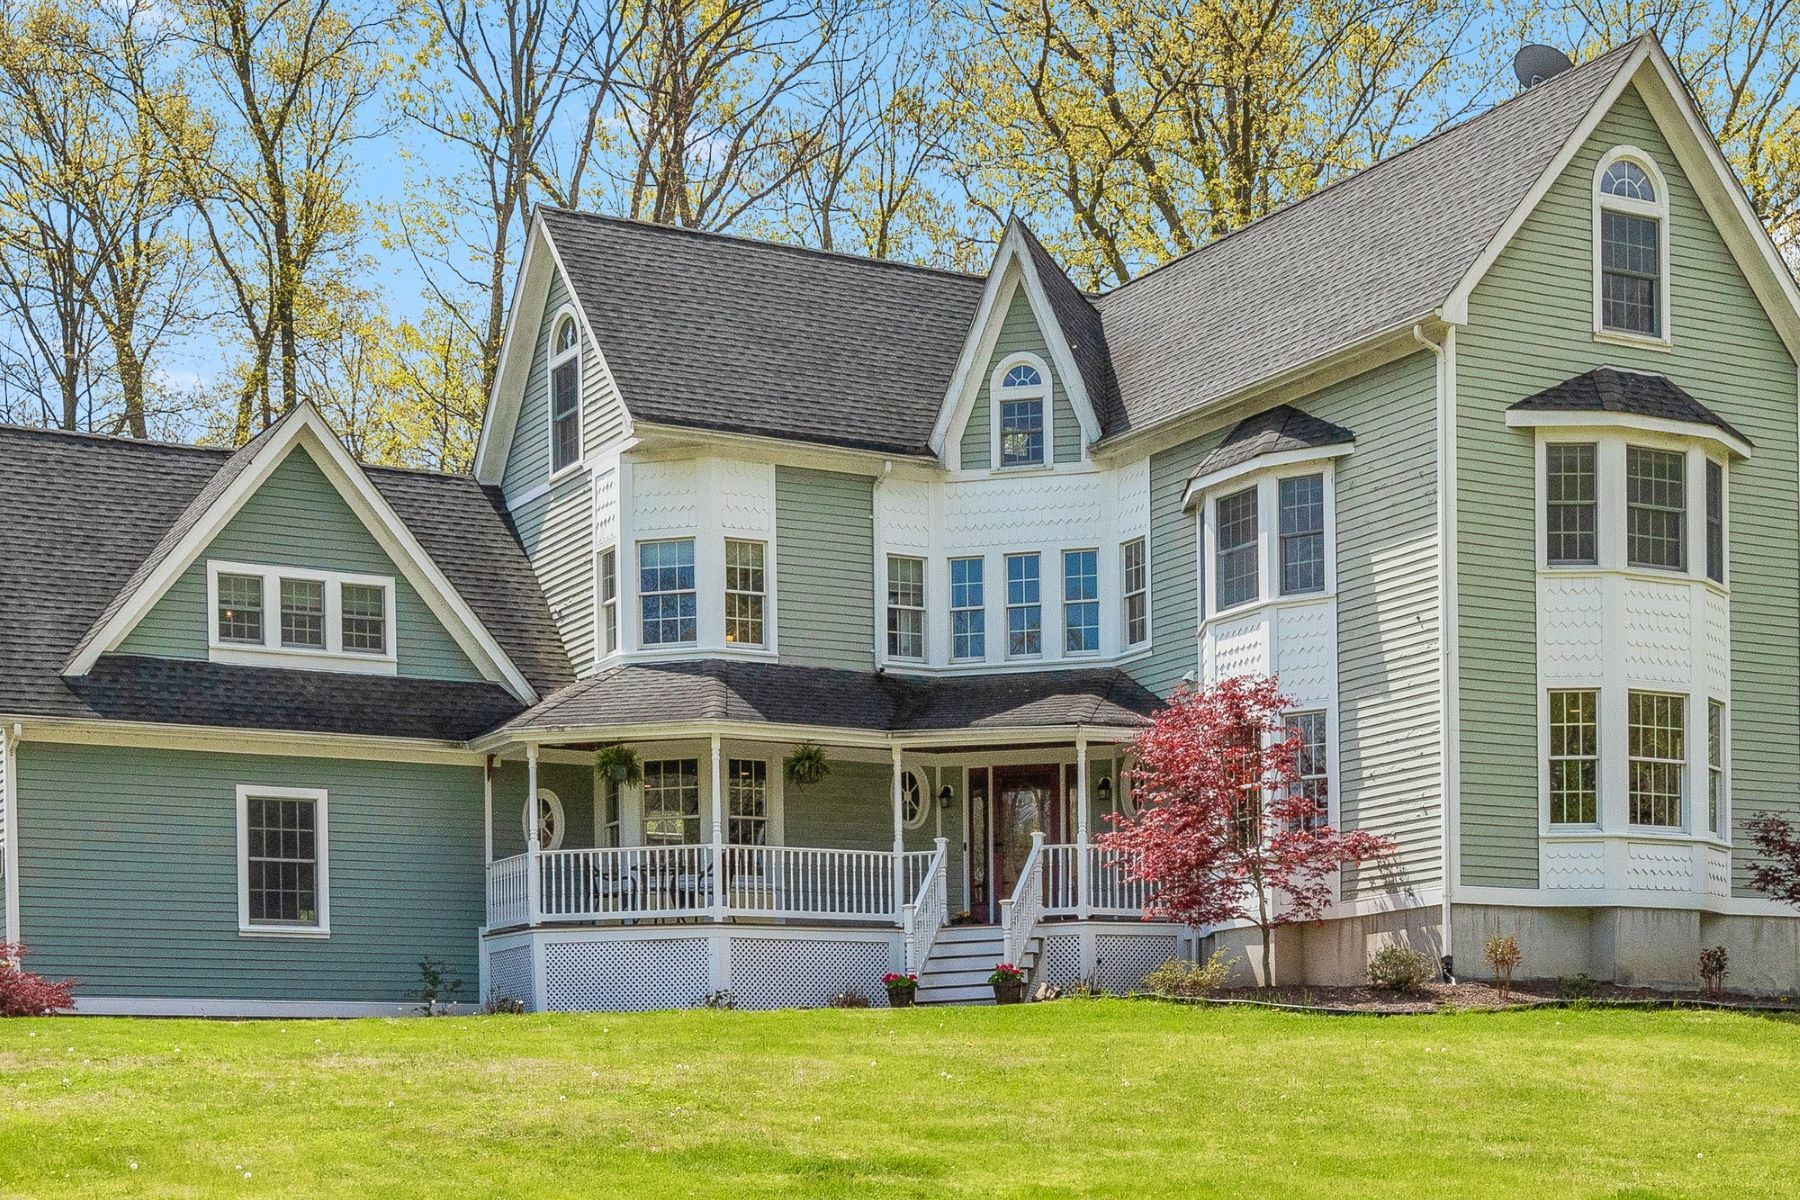 Single Family Homes for Sale at Charming Victorian Style Colonial 9 Meadow Oak Drive, Blairstown, New Jersey 07825 United States